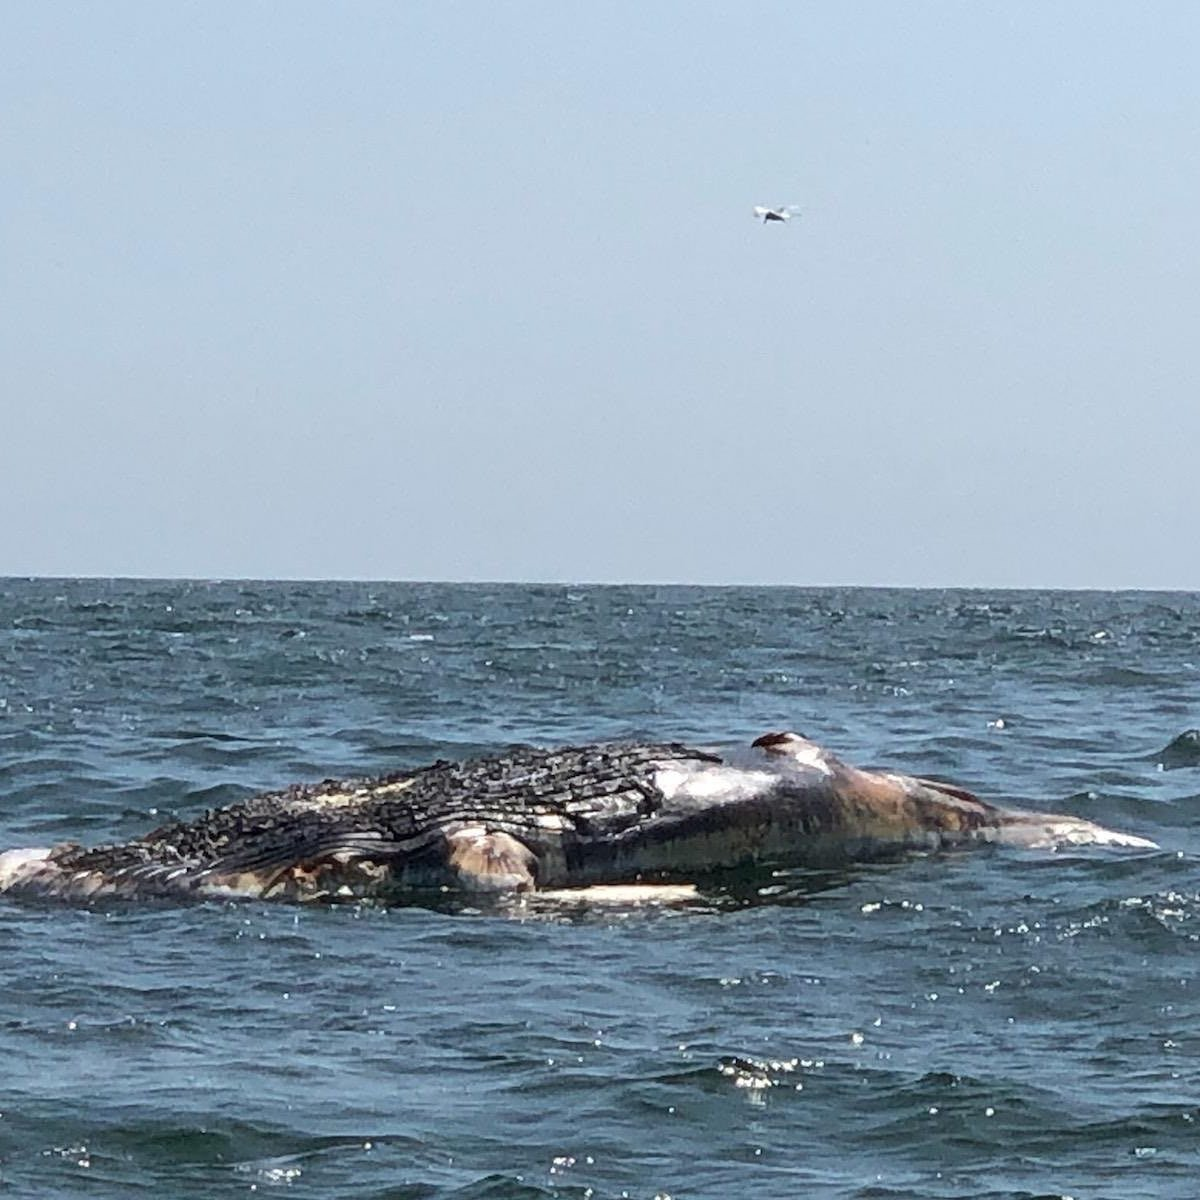 A dead humpback whale washed up in Long Beach on Friday evening.